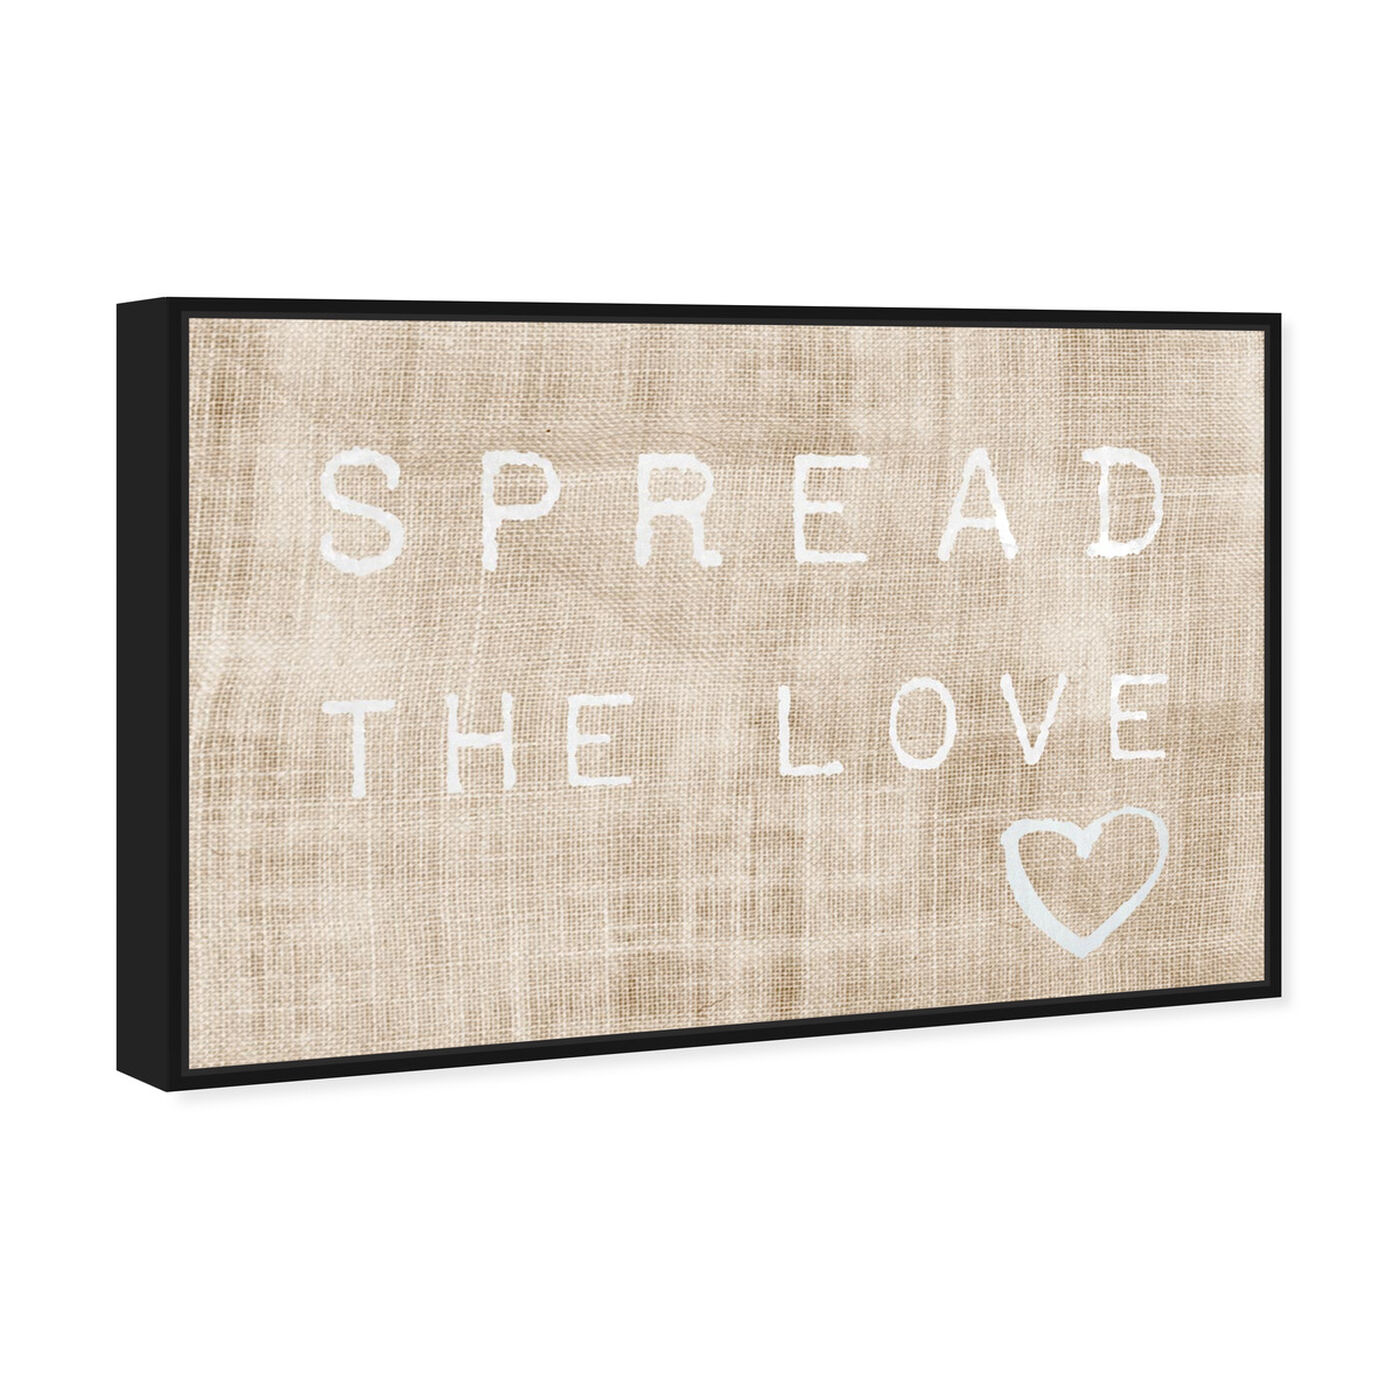 Angled view of Spread the Love featuring typography and quotes and love quotes and sayings art.